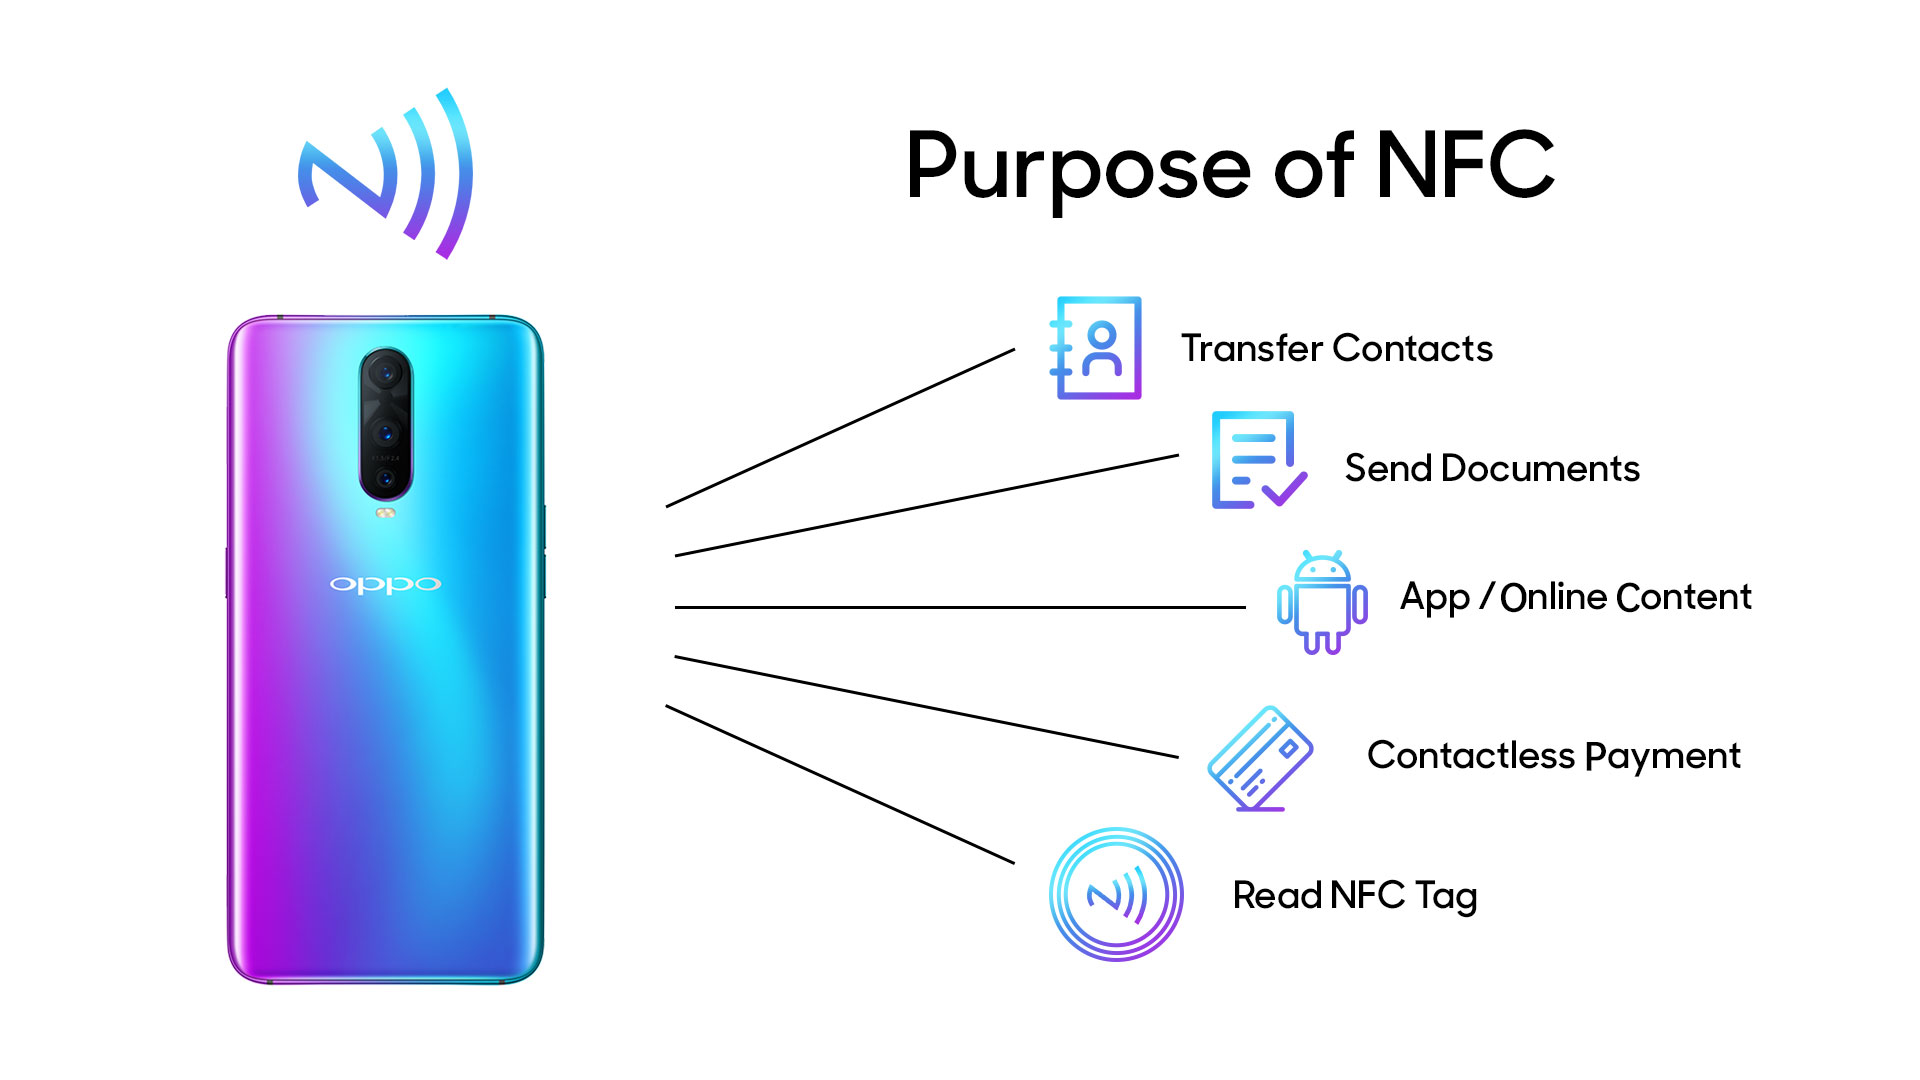 New NFC standard enables 1W wireless charging for small devices